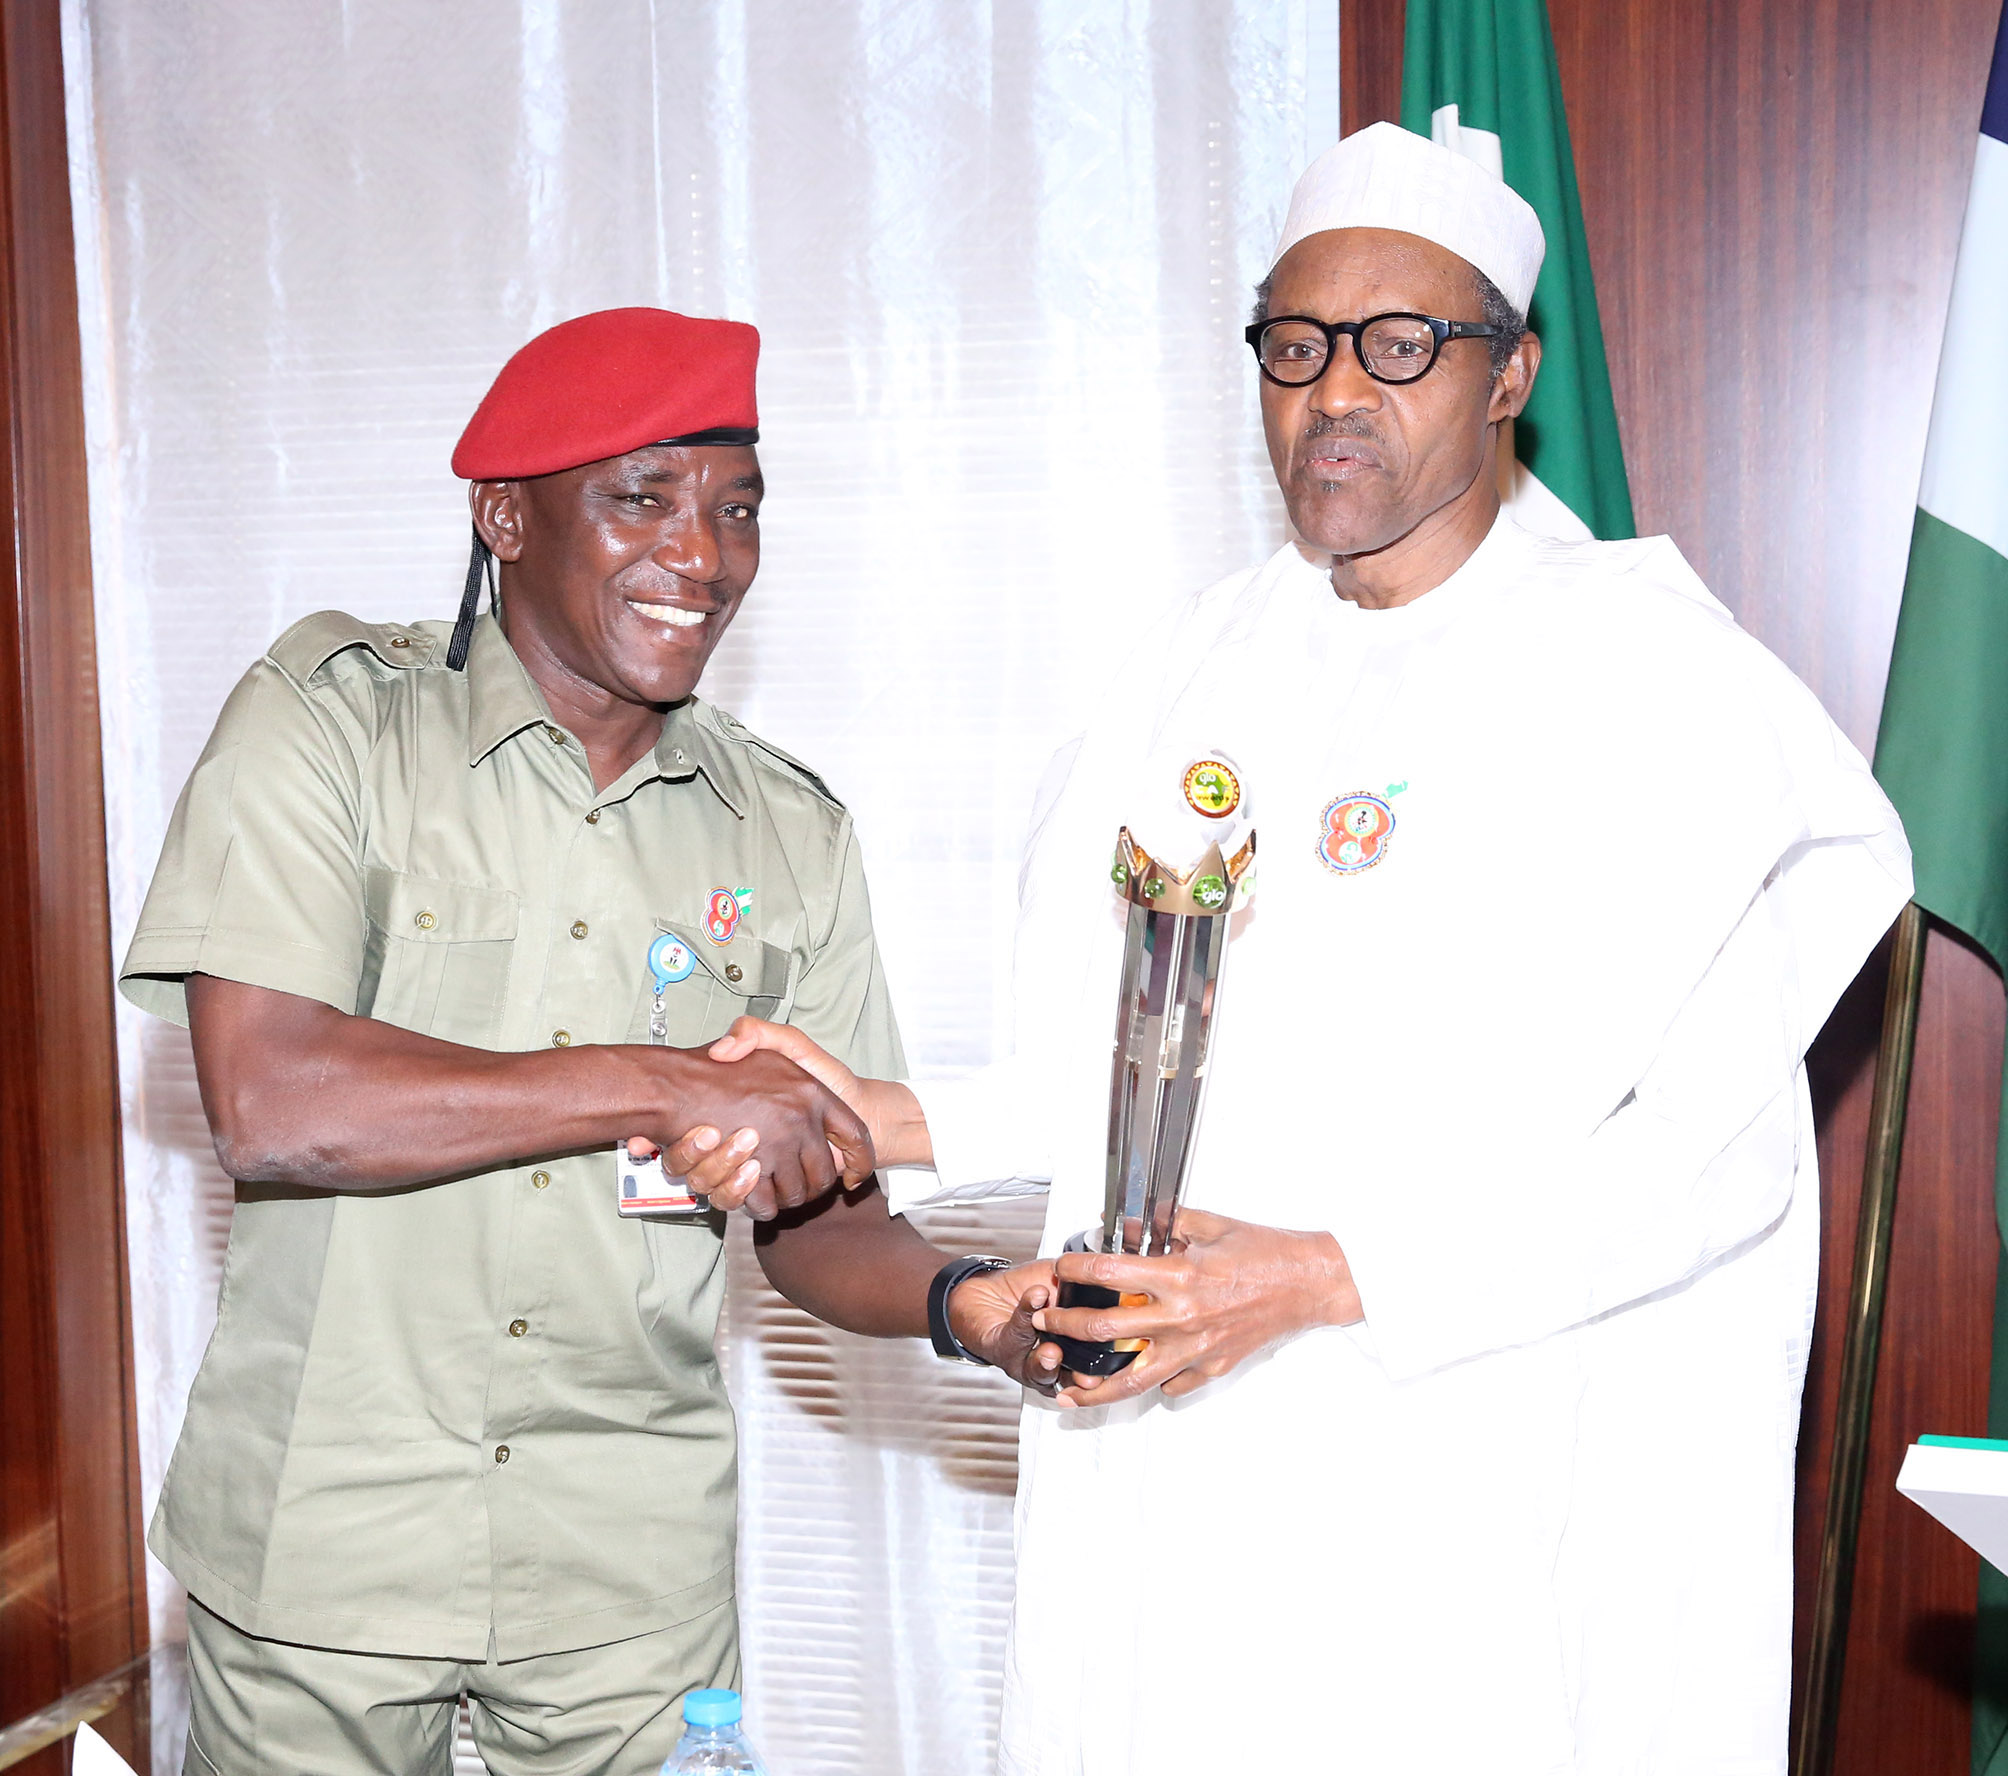 PRESIDENT BUHARI RECEIVES GLO CAF AWARD 1A&B. President Muhammadu Buhari being presented with the GLO CAF Platinum Award Trophy by the the Minister of Youth and Sports, Barrister Solomon Dalung for Good Leadership at the State House in Abuja. PHOTO; SUNDAY AGHAEZE. JAN 11 2016.